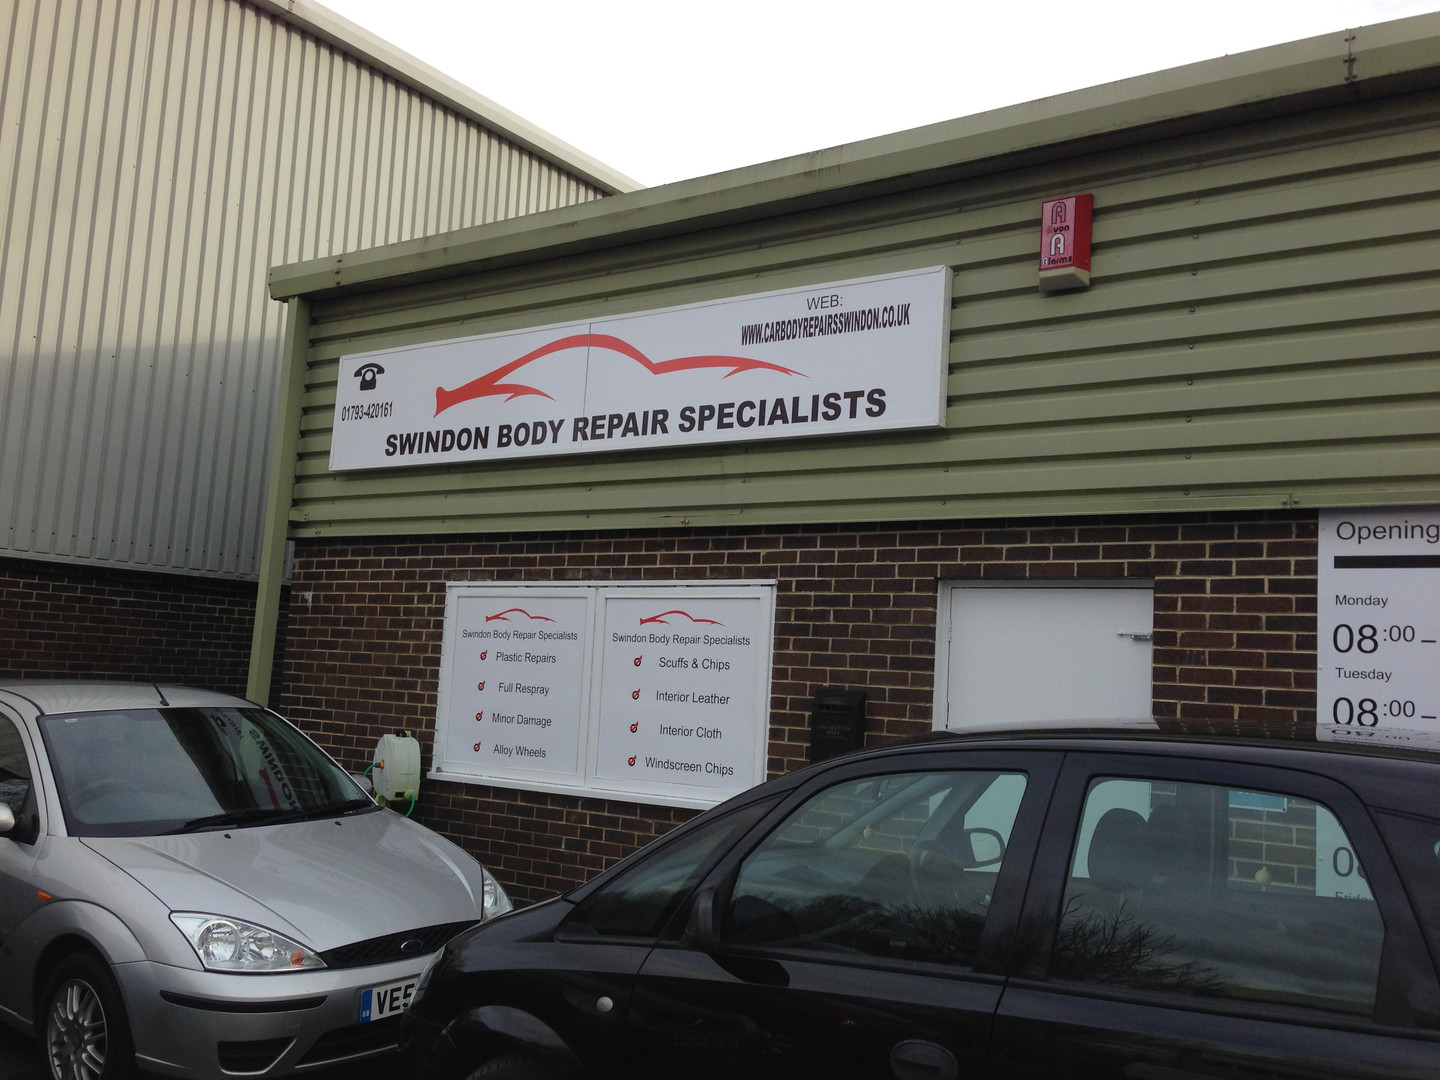 Swindon Body Repair Specialists external signs